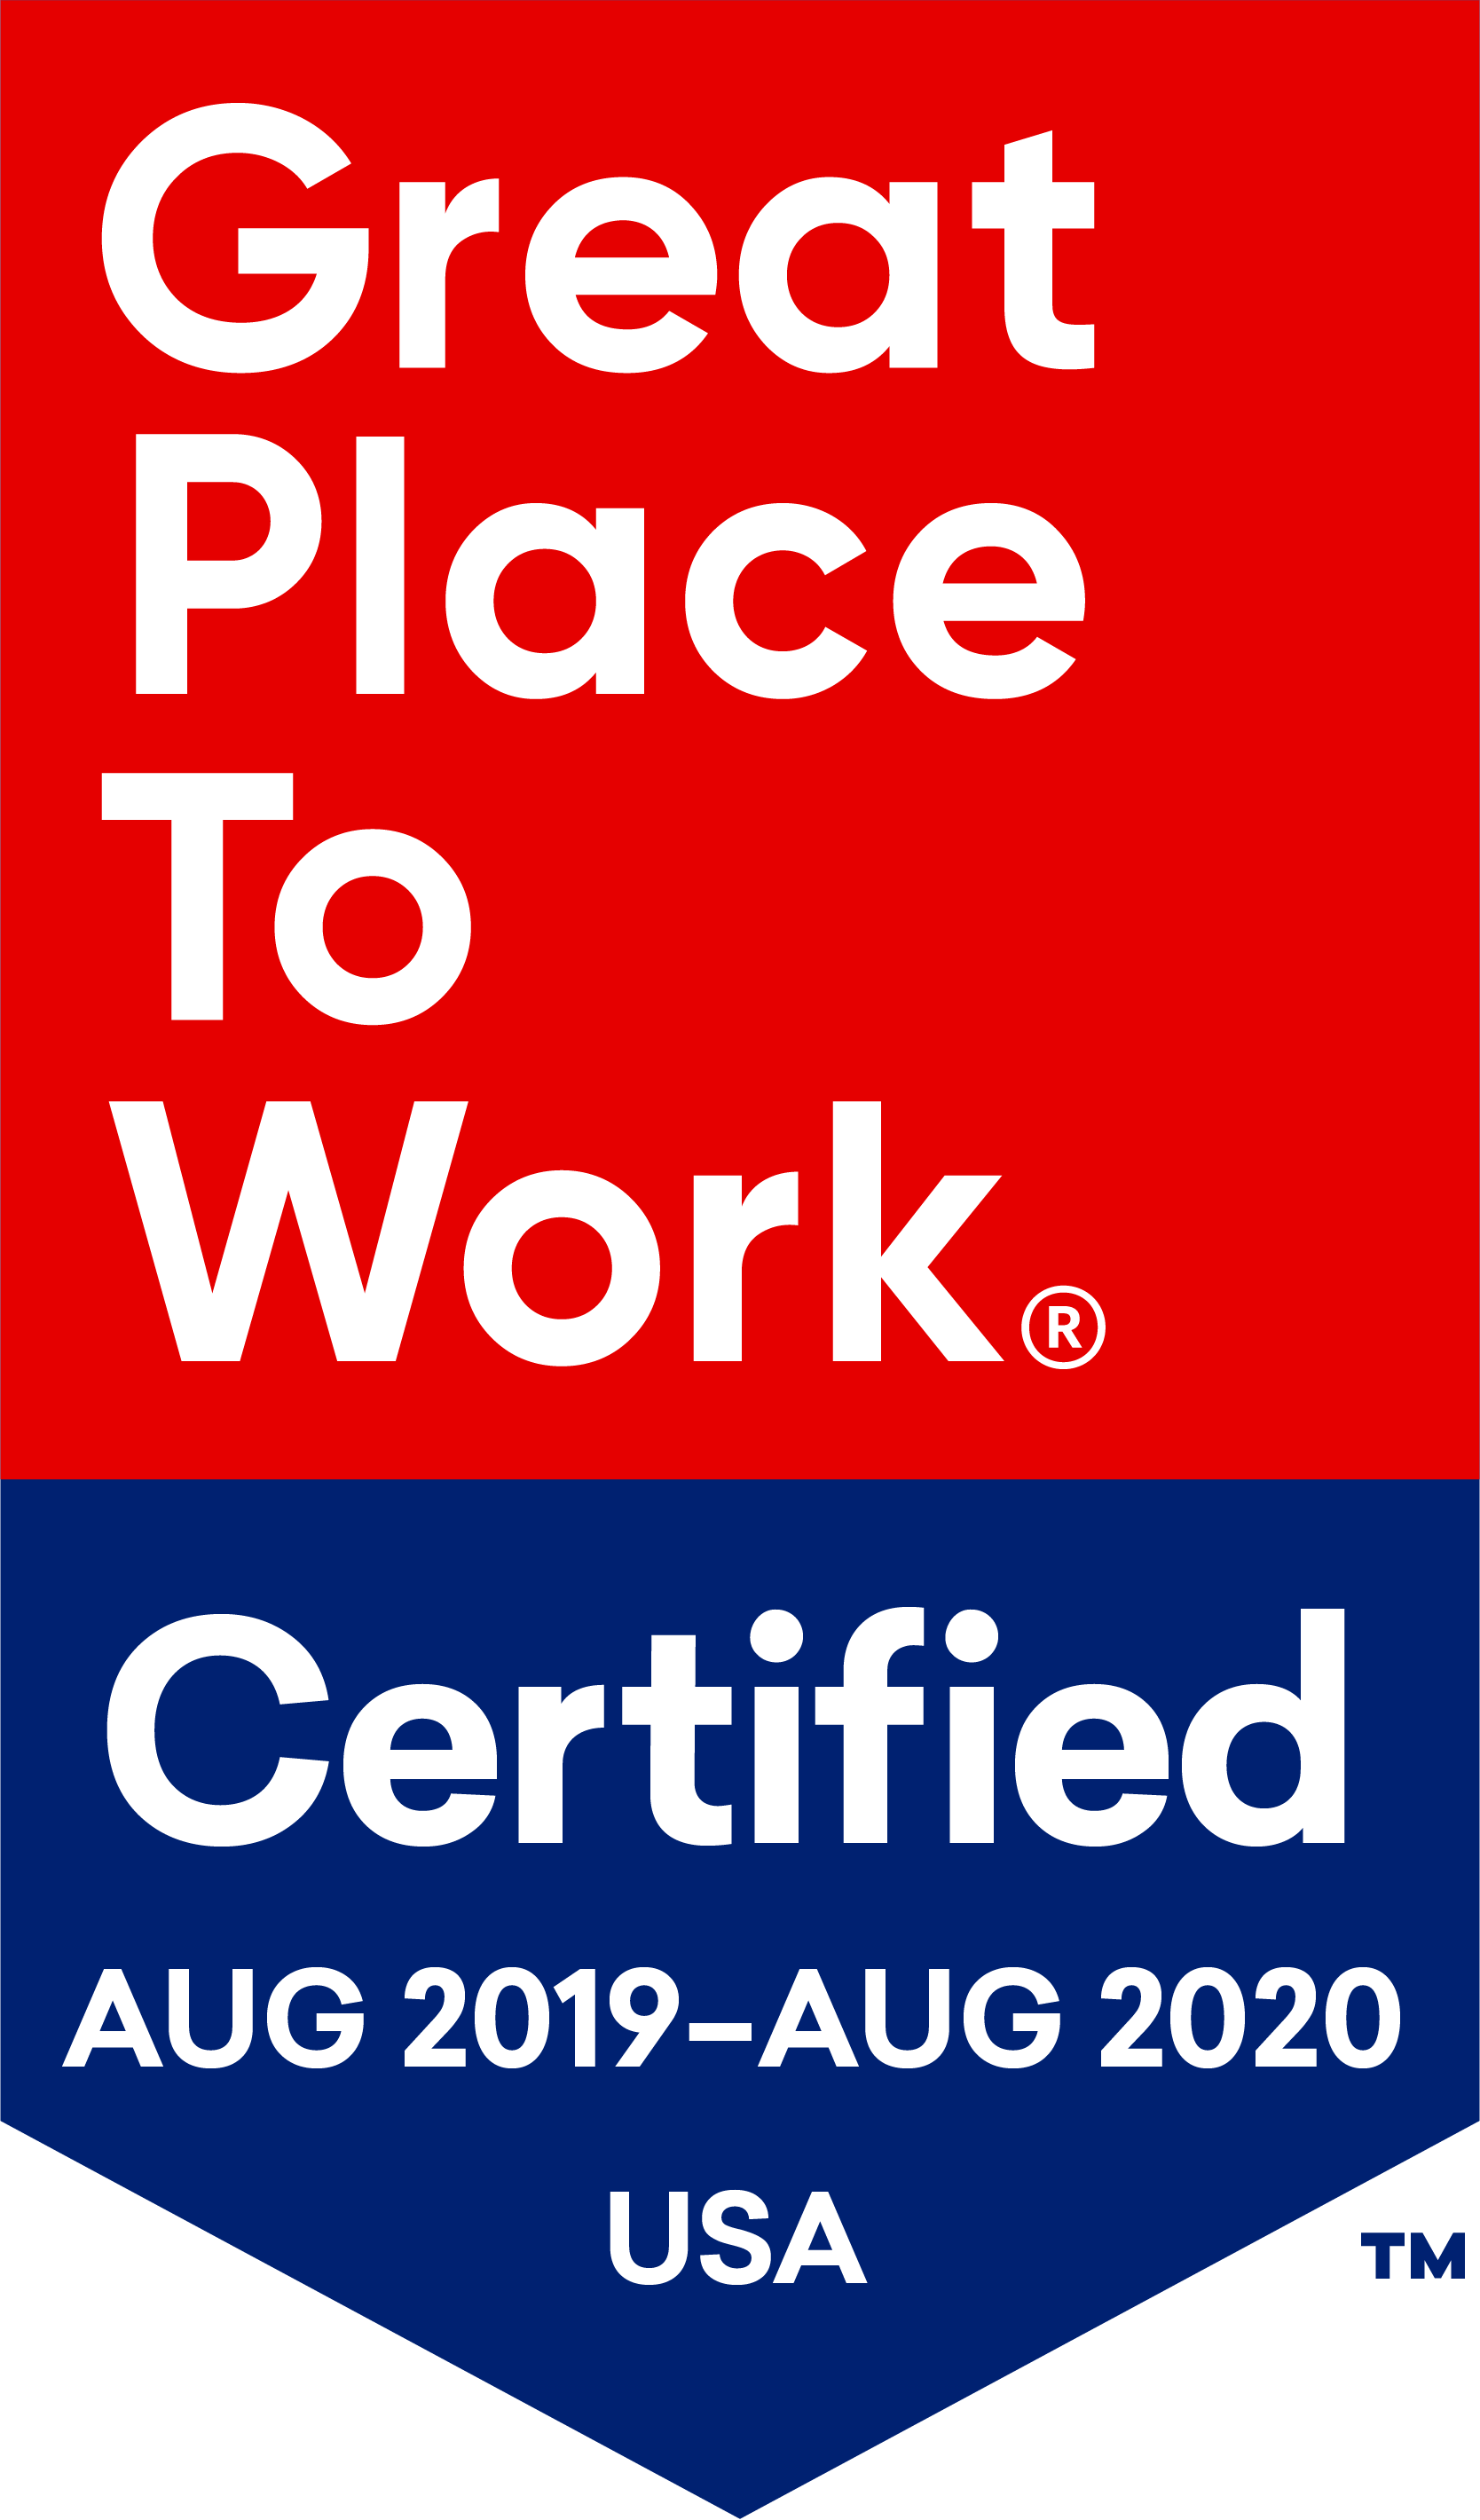 Great Place to Work USA